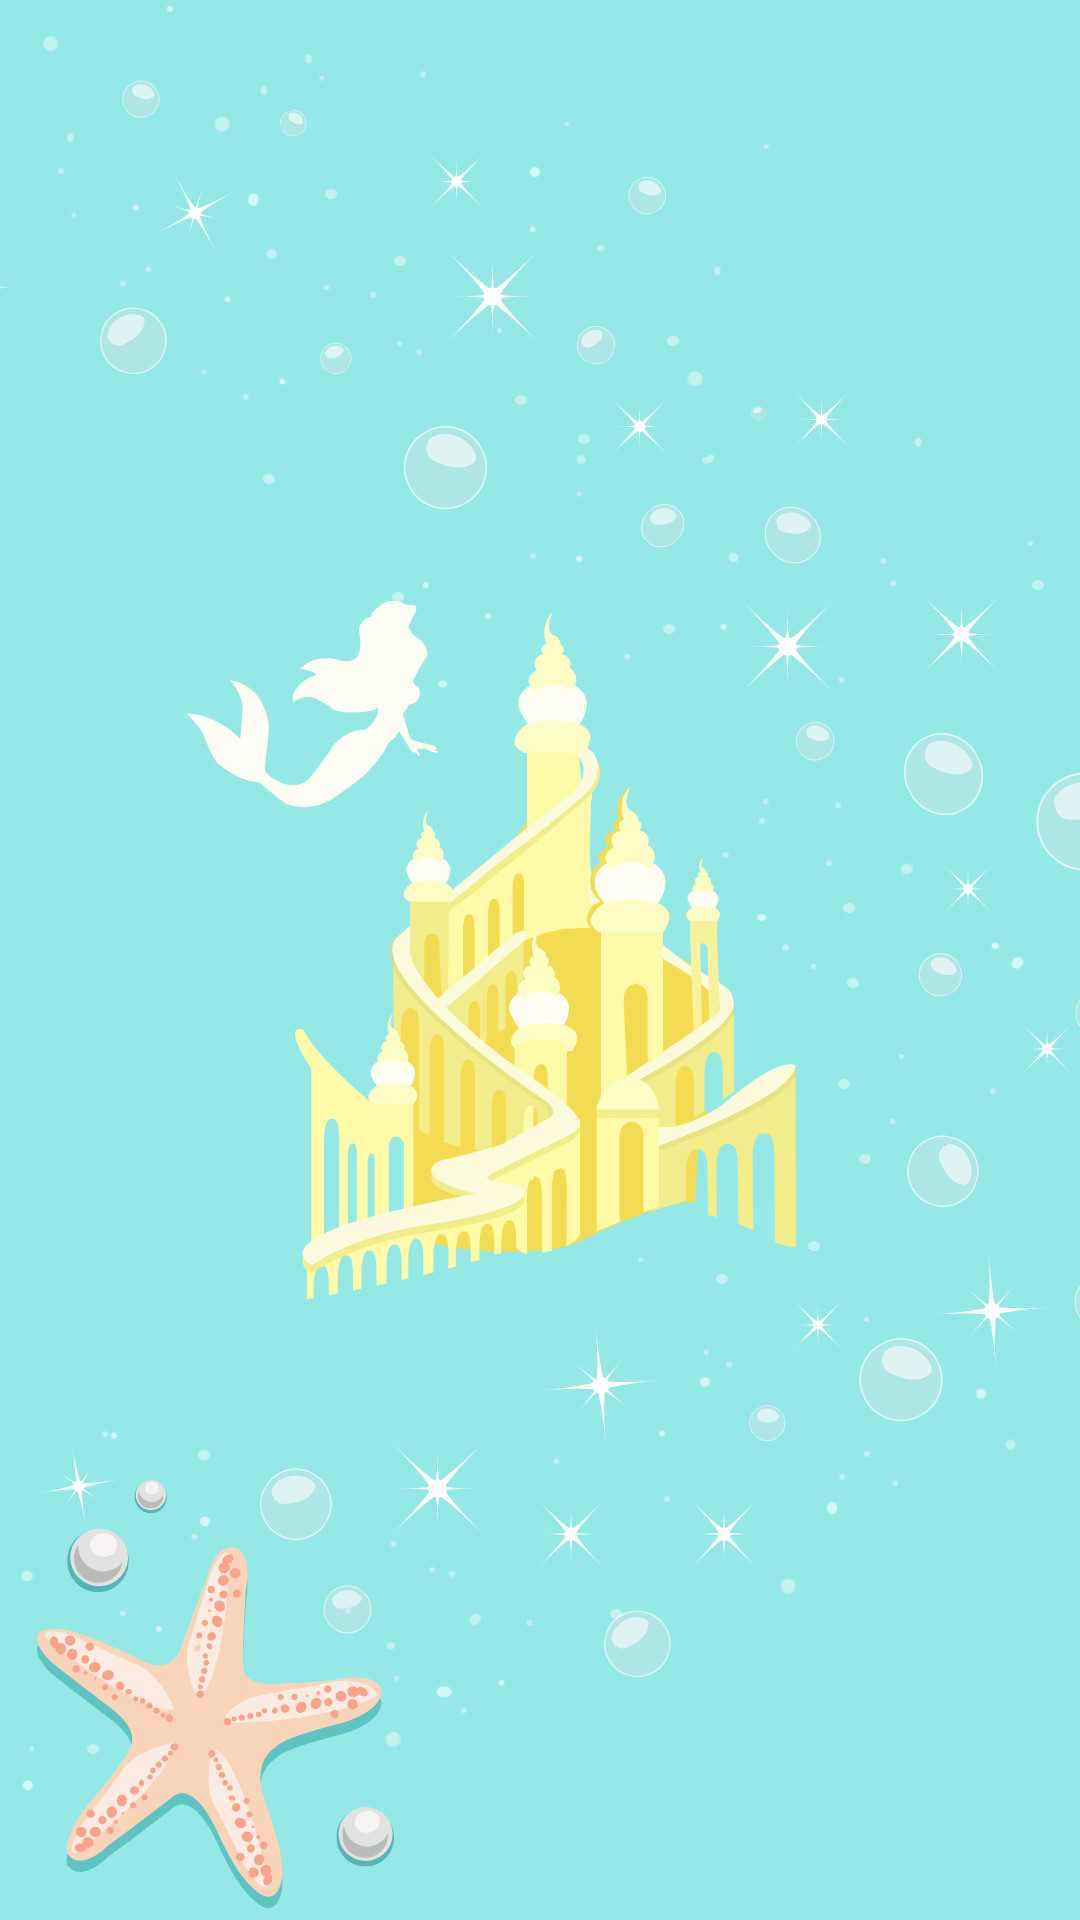 Disney Wallpaper For Iphone 5 72 Images